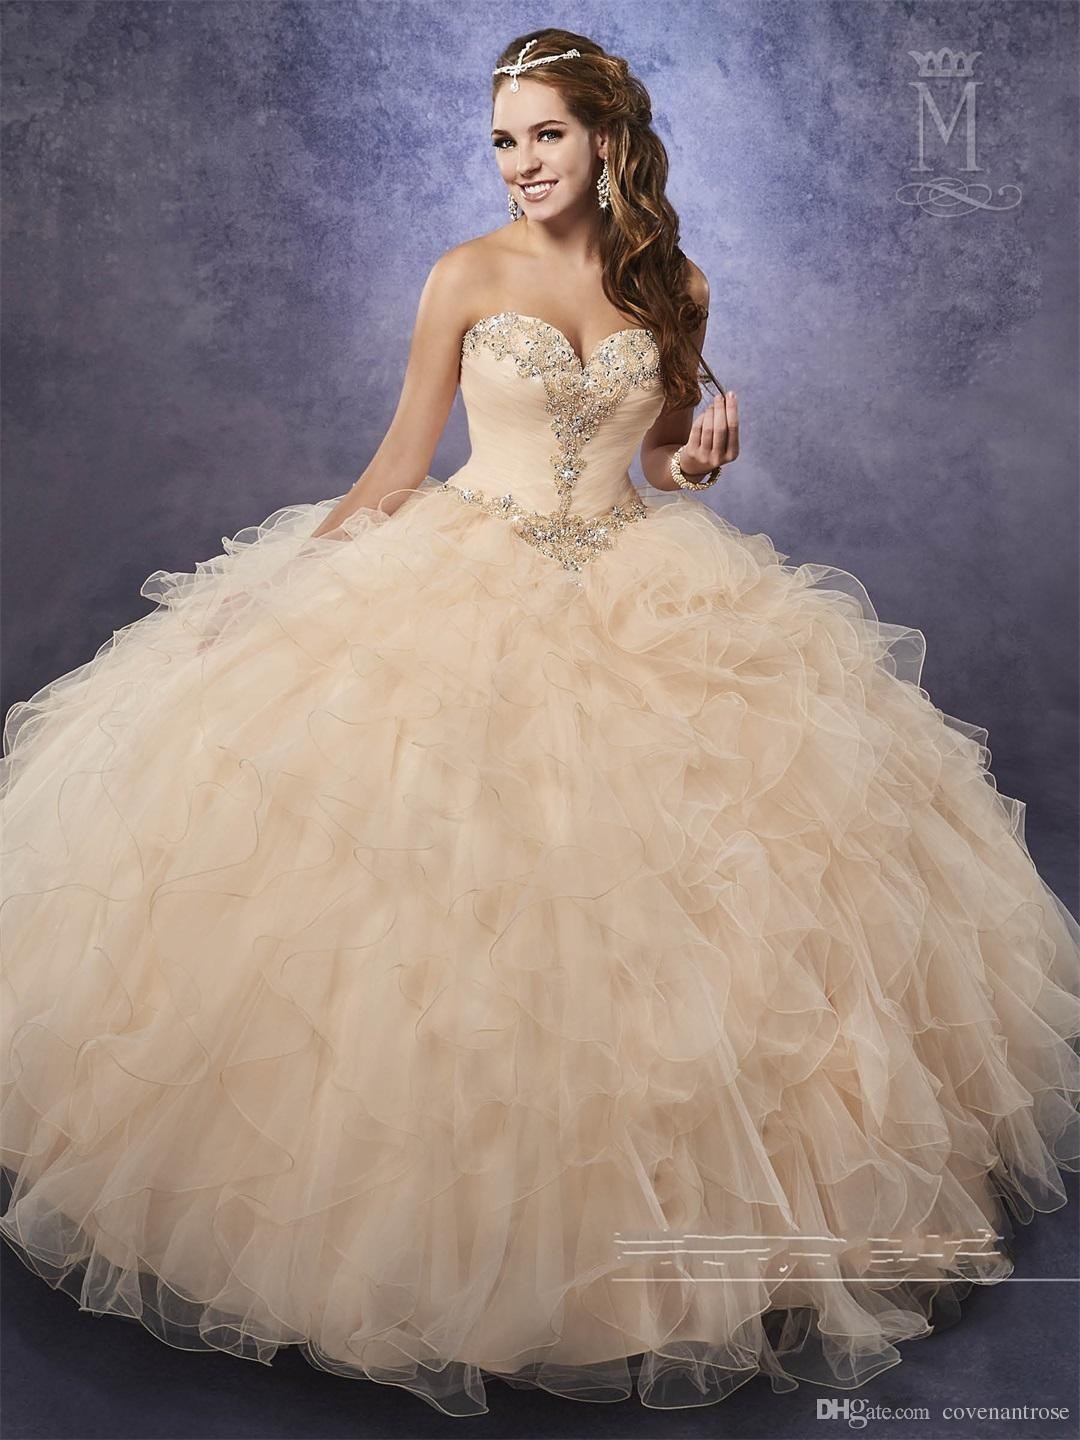 New Champagne Quinceanera with Detachable Straps Beaded Basque Waistline Ruffles Pink Sweet 16 Dress Lace Up Back Masquerade Gowns